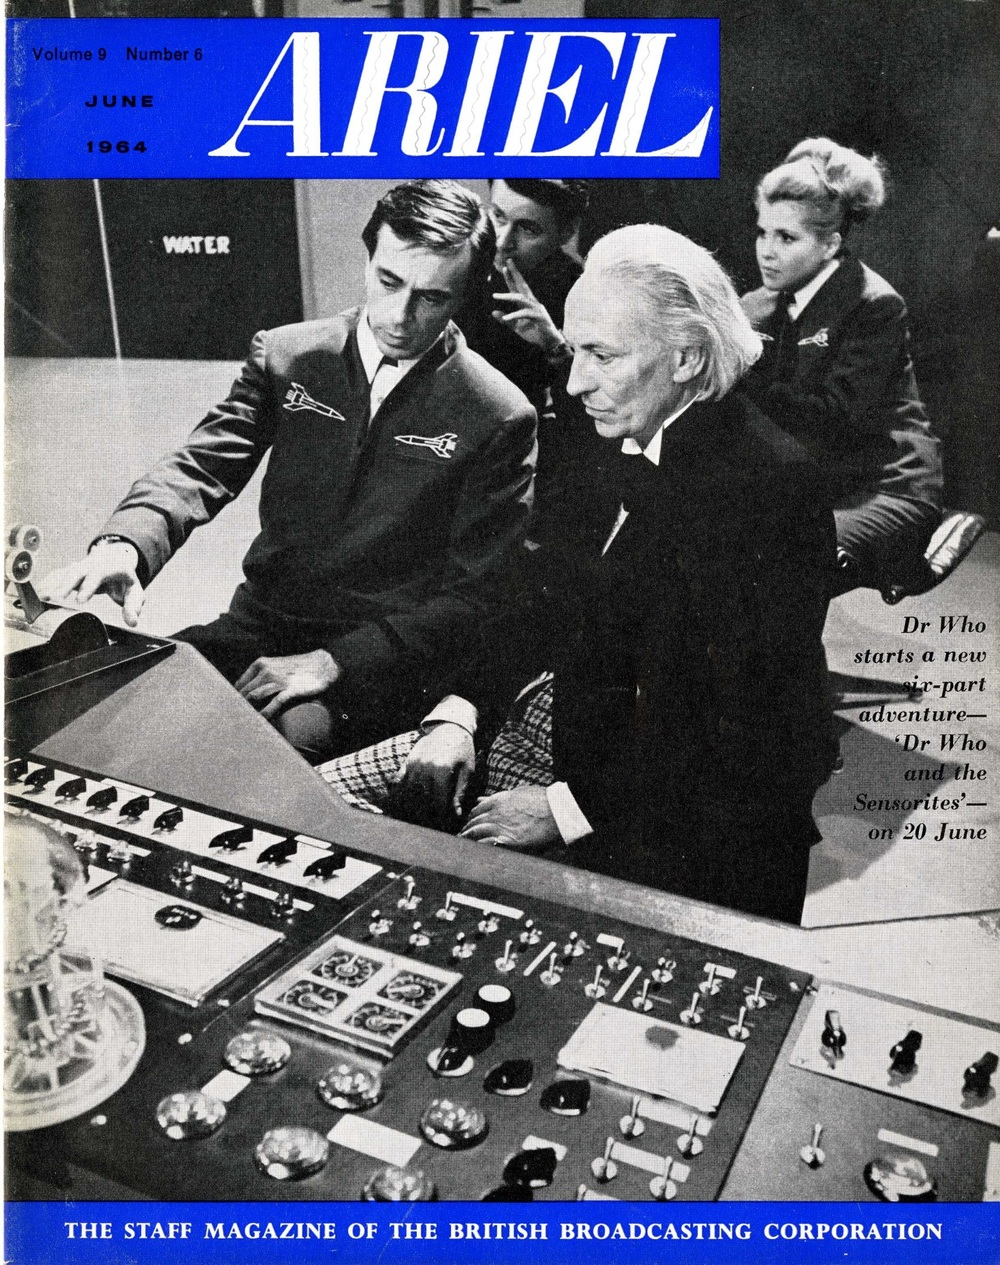 Ariel, the BBC's staff magazine with cover featuring The Sensorites, Vol. 9, No. 6, June 1964